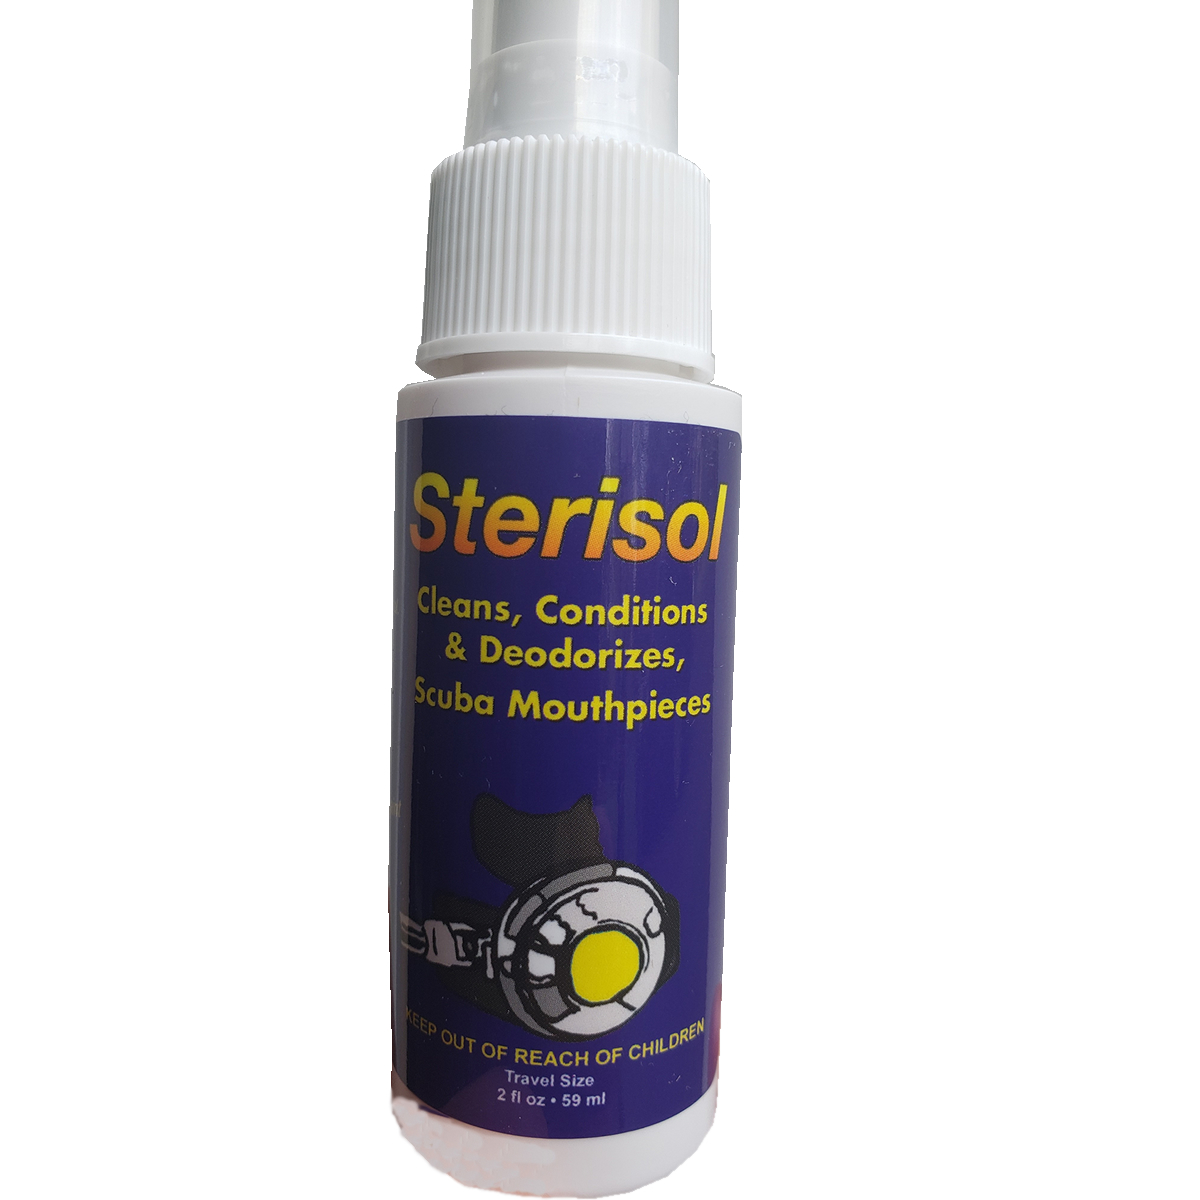 Trident Sterisol Germicide 2-ounce Spray Bottle